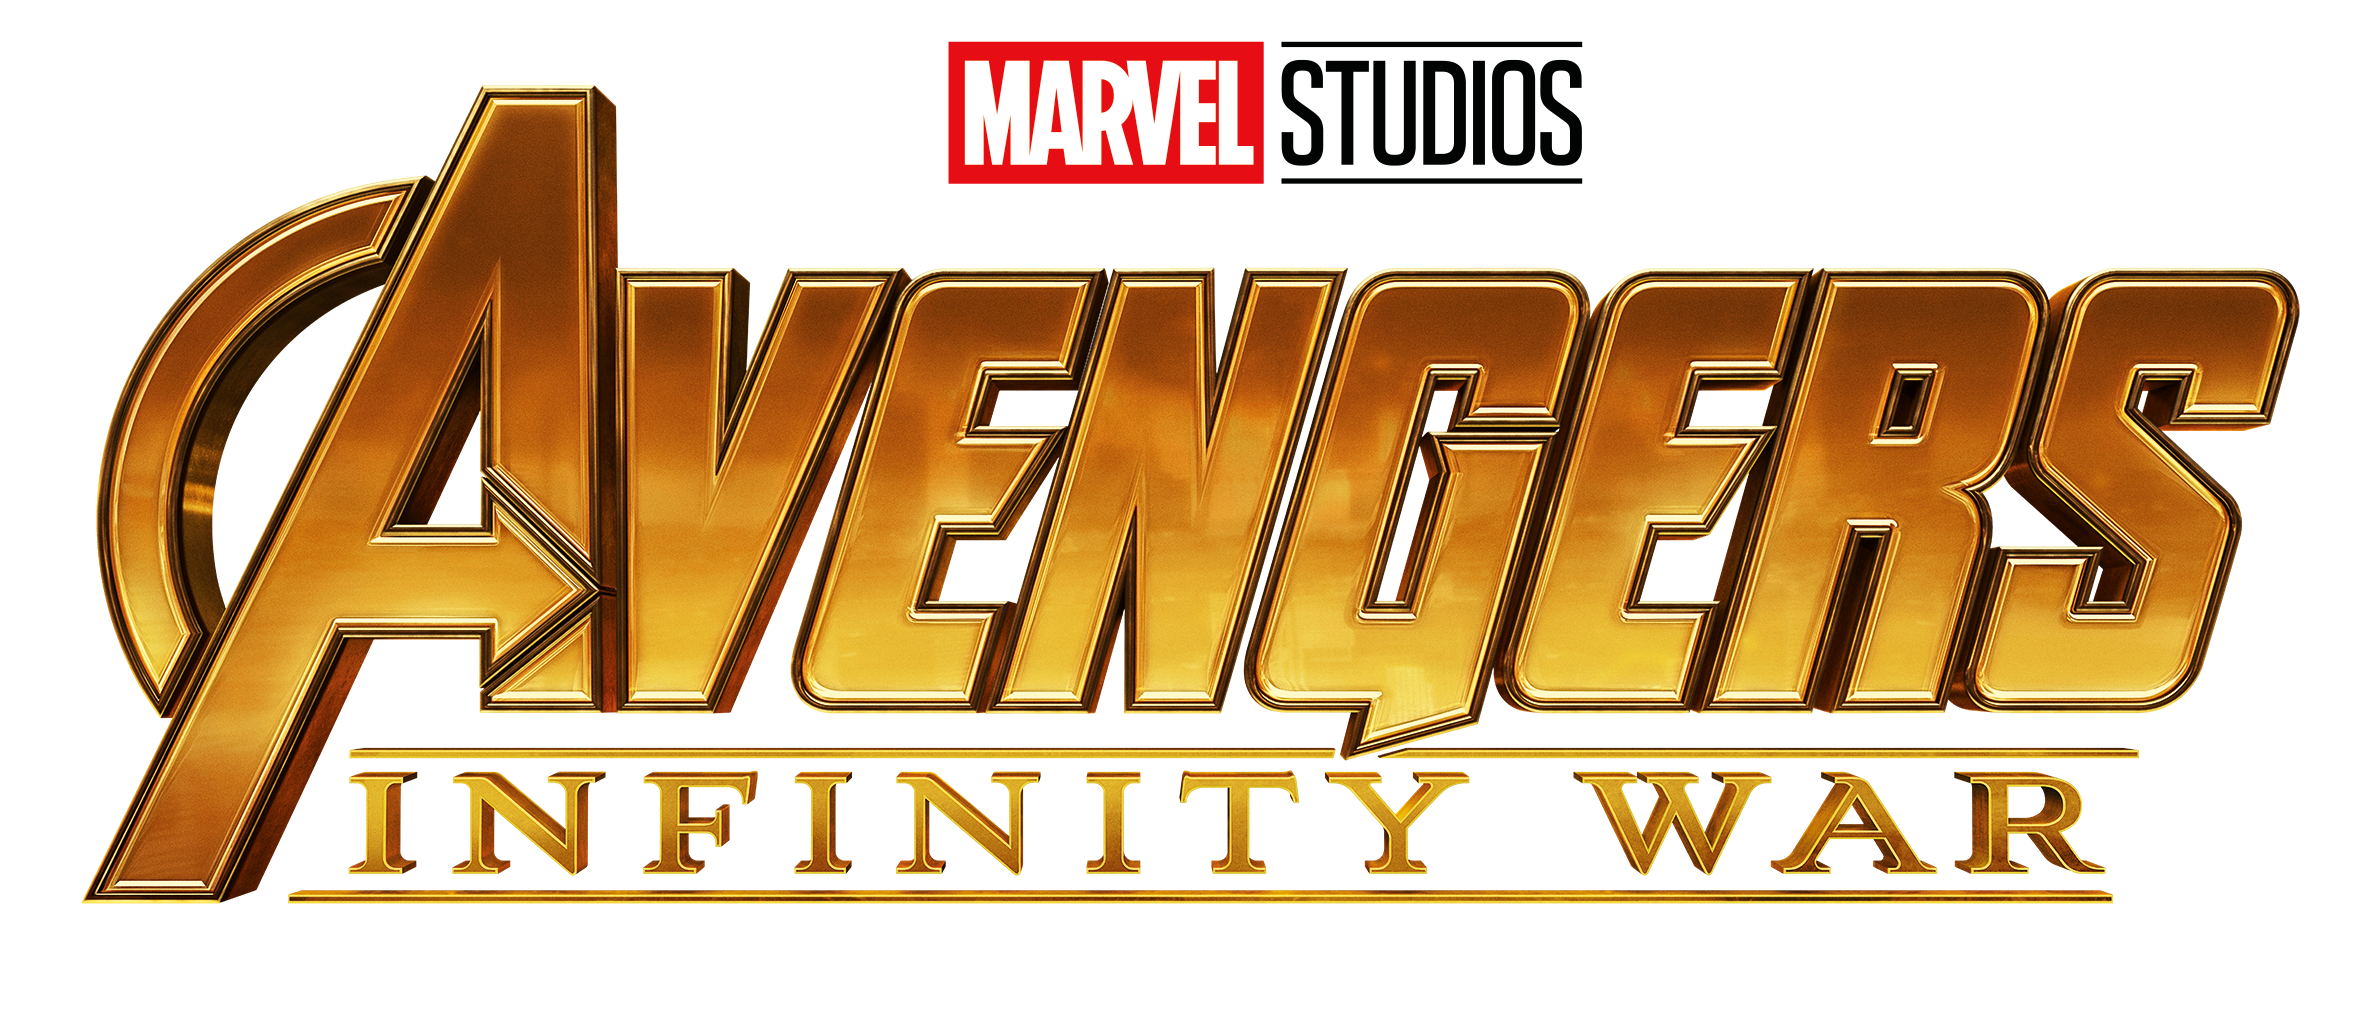 Right Now I Got Access To The New Official Infinity War Logo Just Wanted To Share This